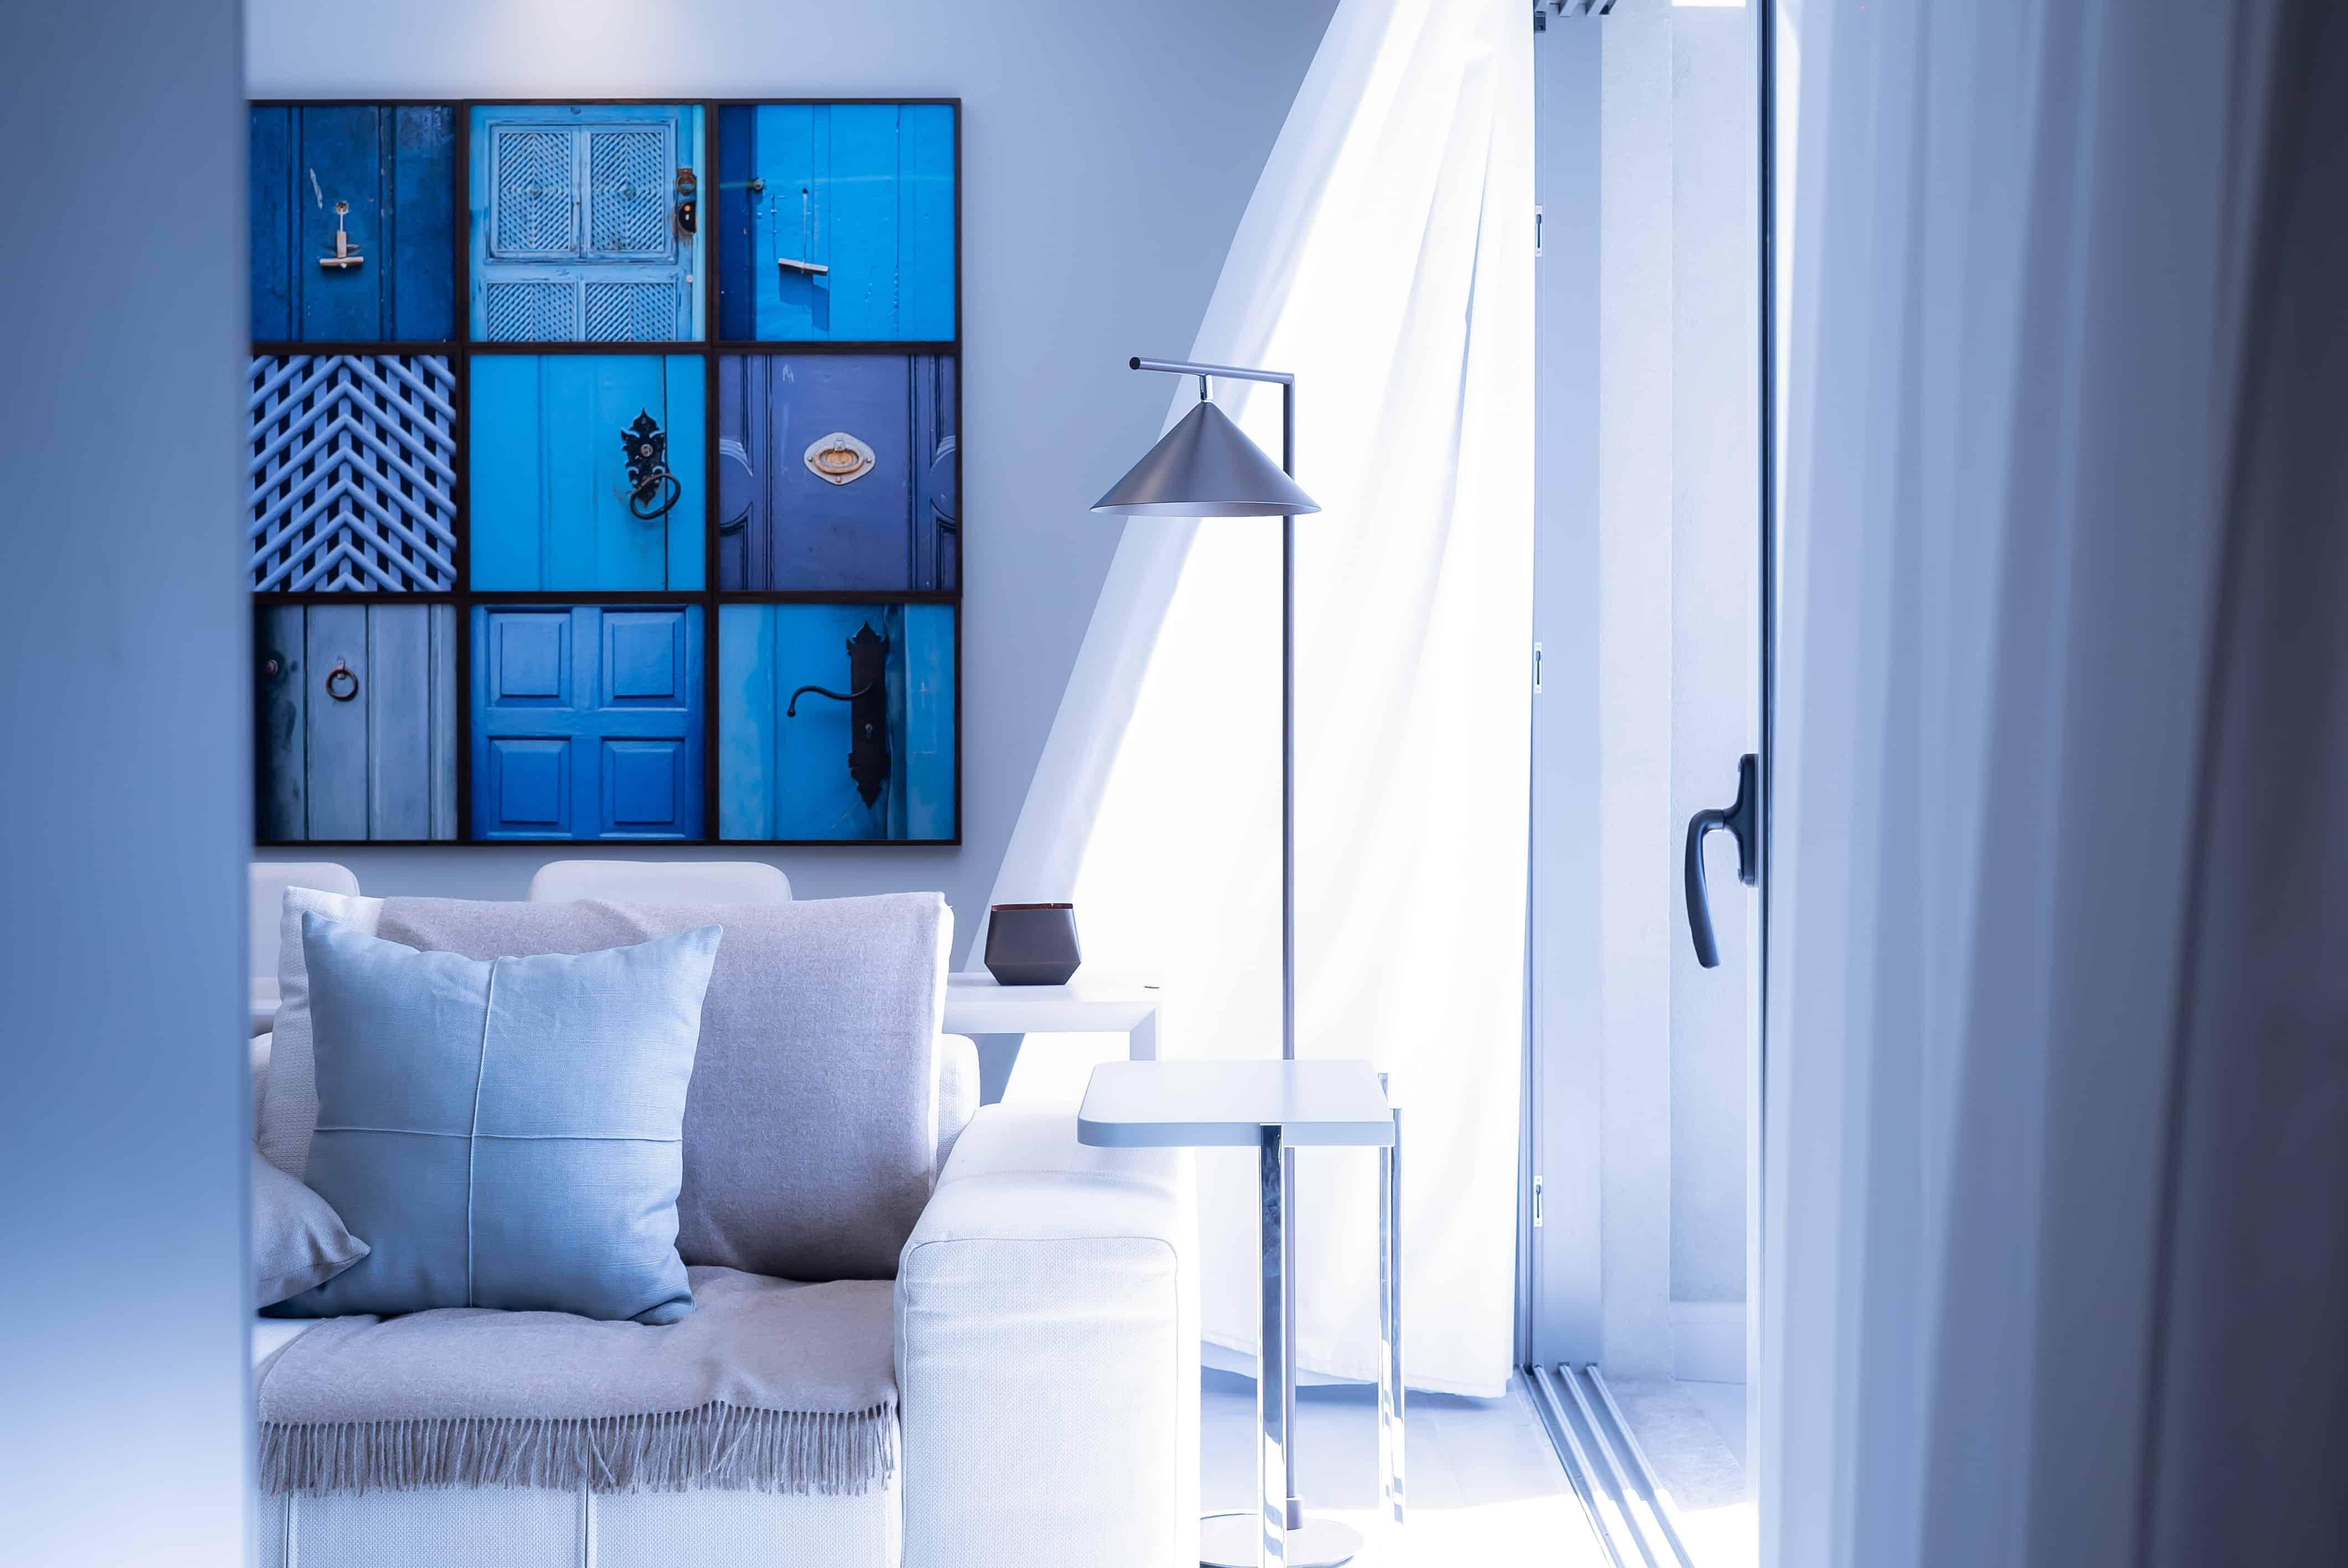 Renters Pay More for Properties with Smart Home Upgrades